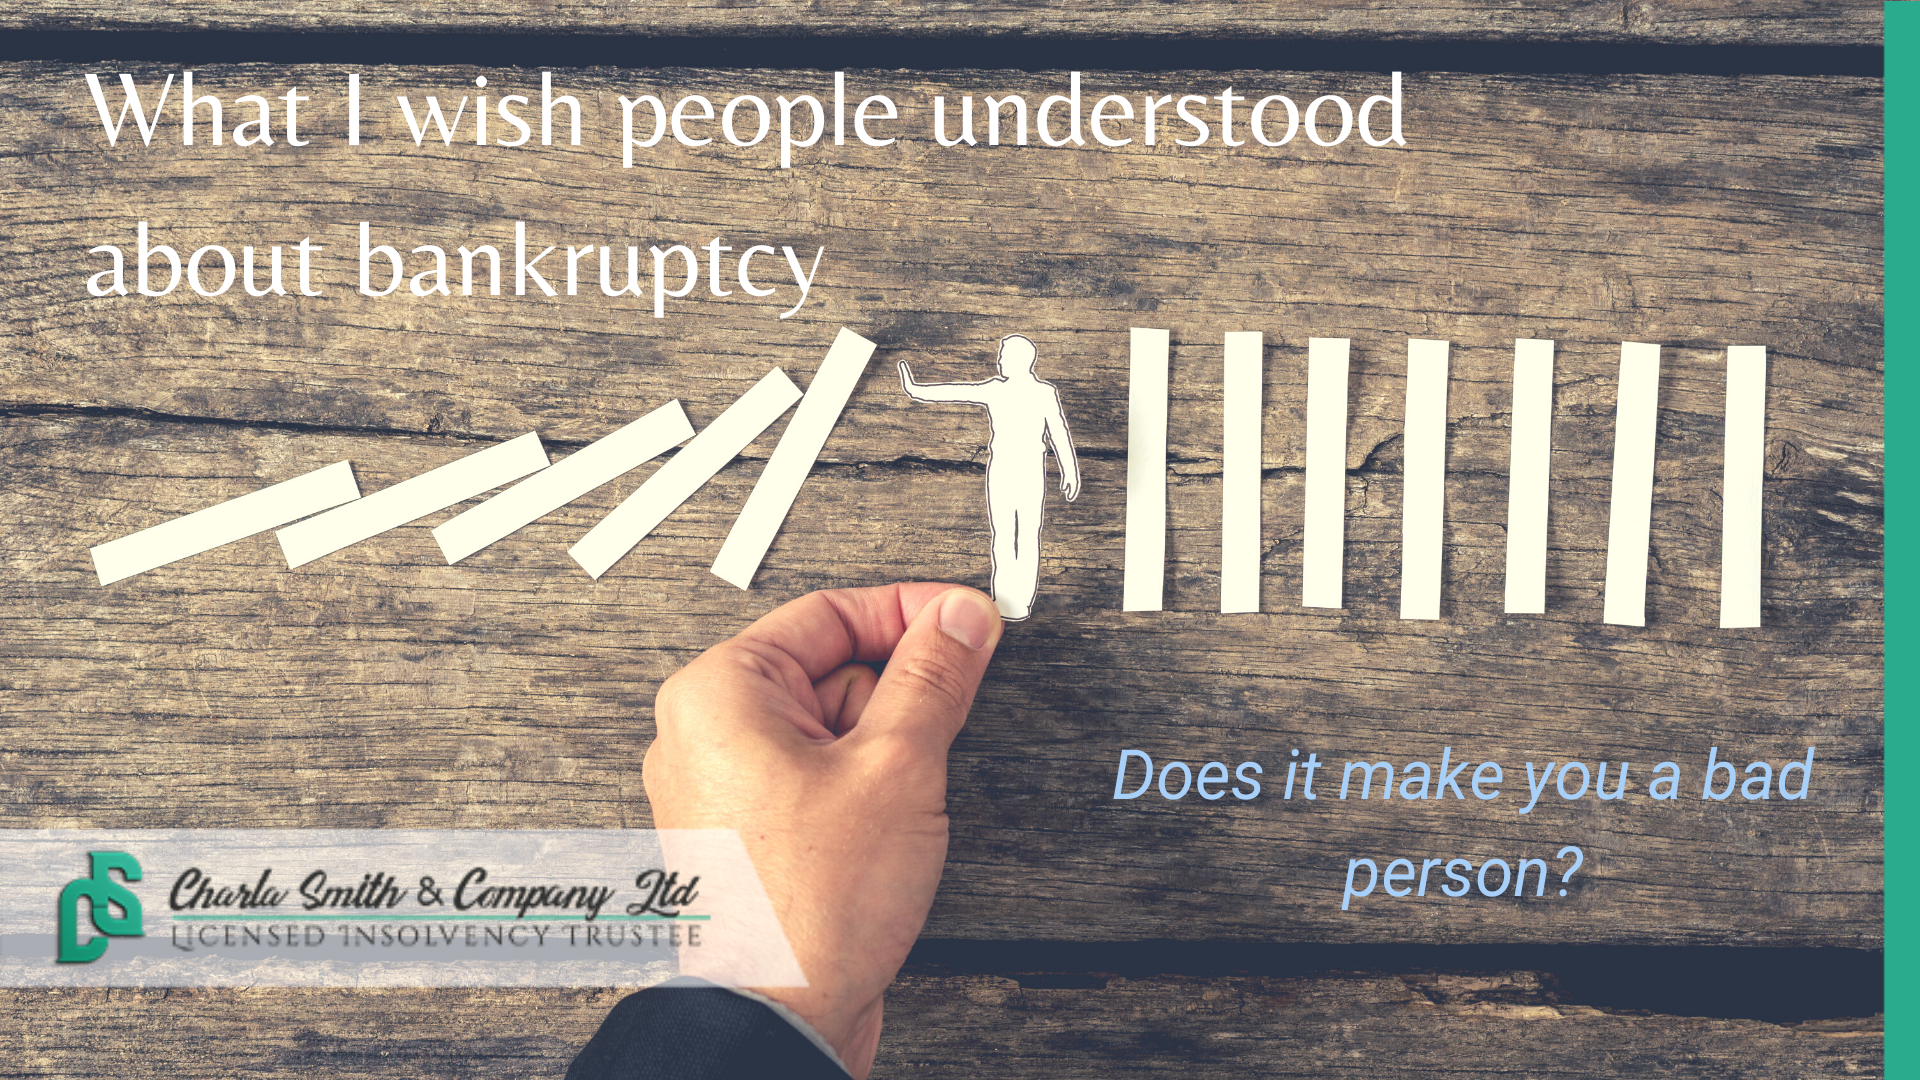 What I Wish People Understood About Bankruptcy | Does it make you a bad person?